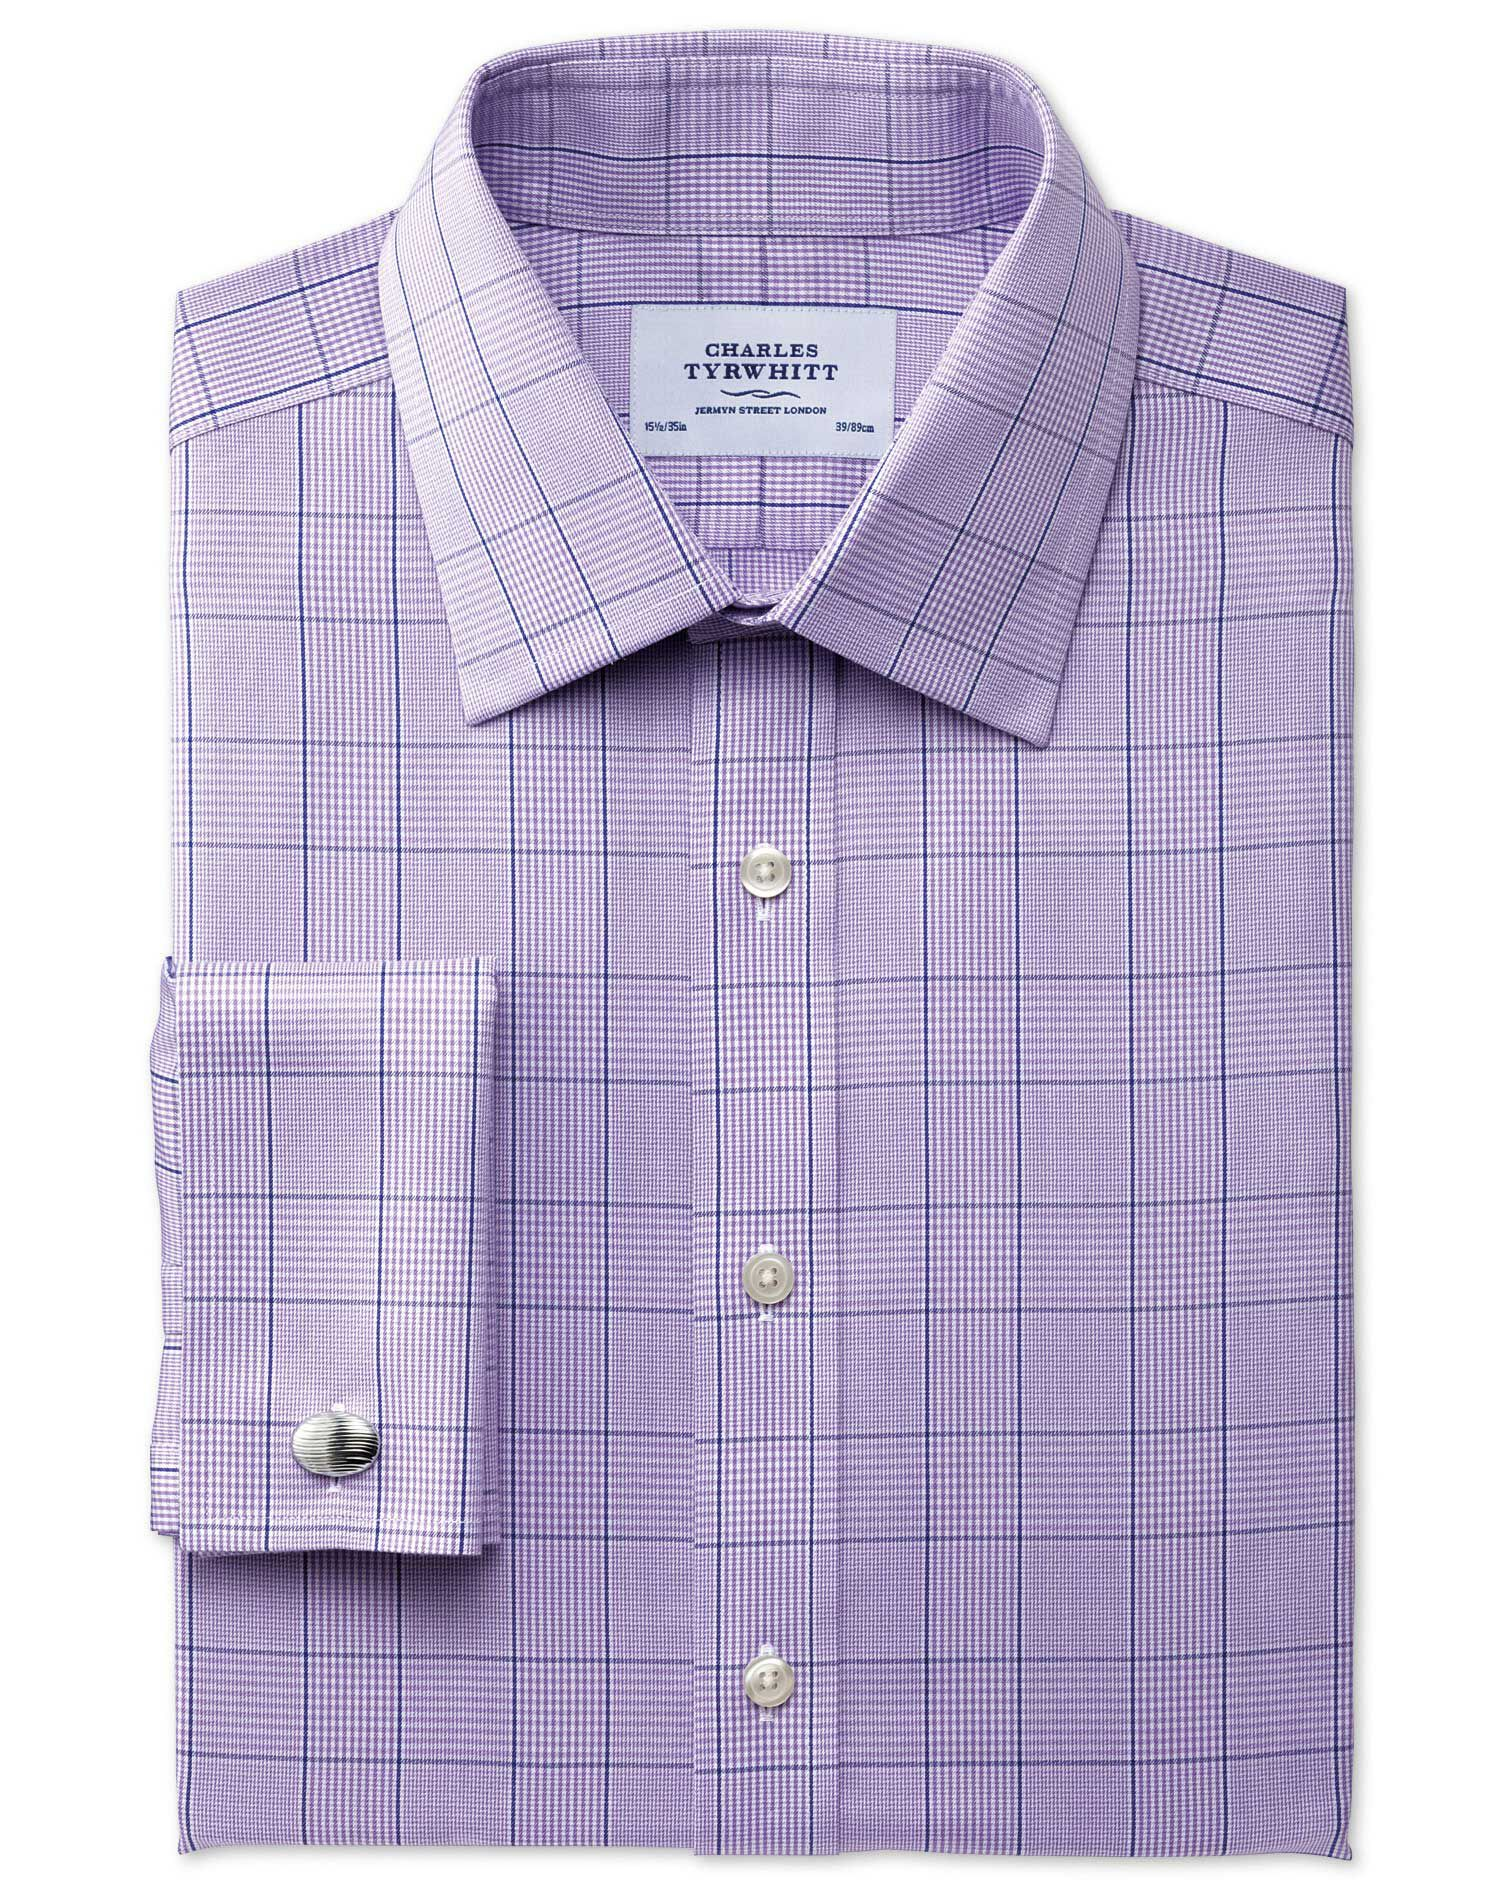 Slim Fit Non-Iron Prince Of Wales Lilac Cotton Formal Shirt Single Cuff Size 16/36 by Charles Tyrwhi